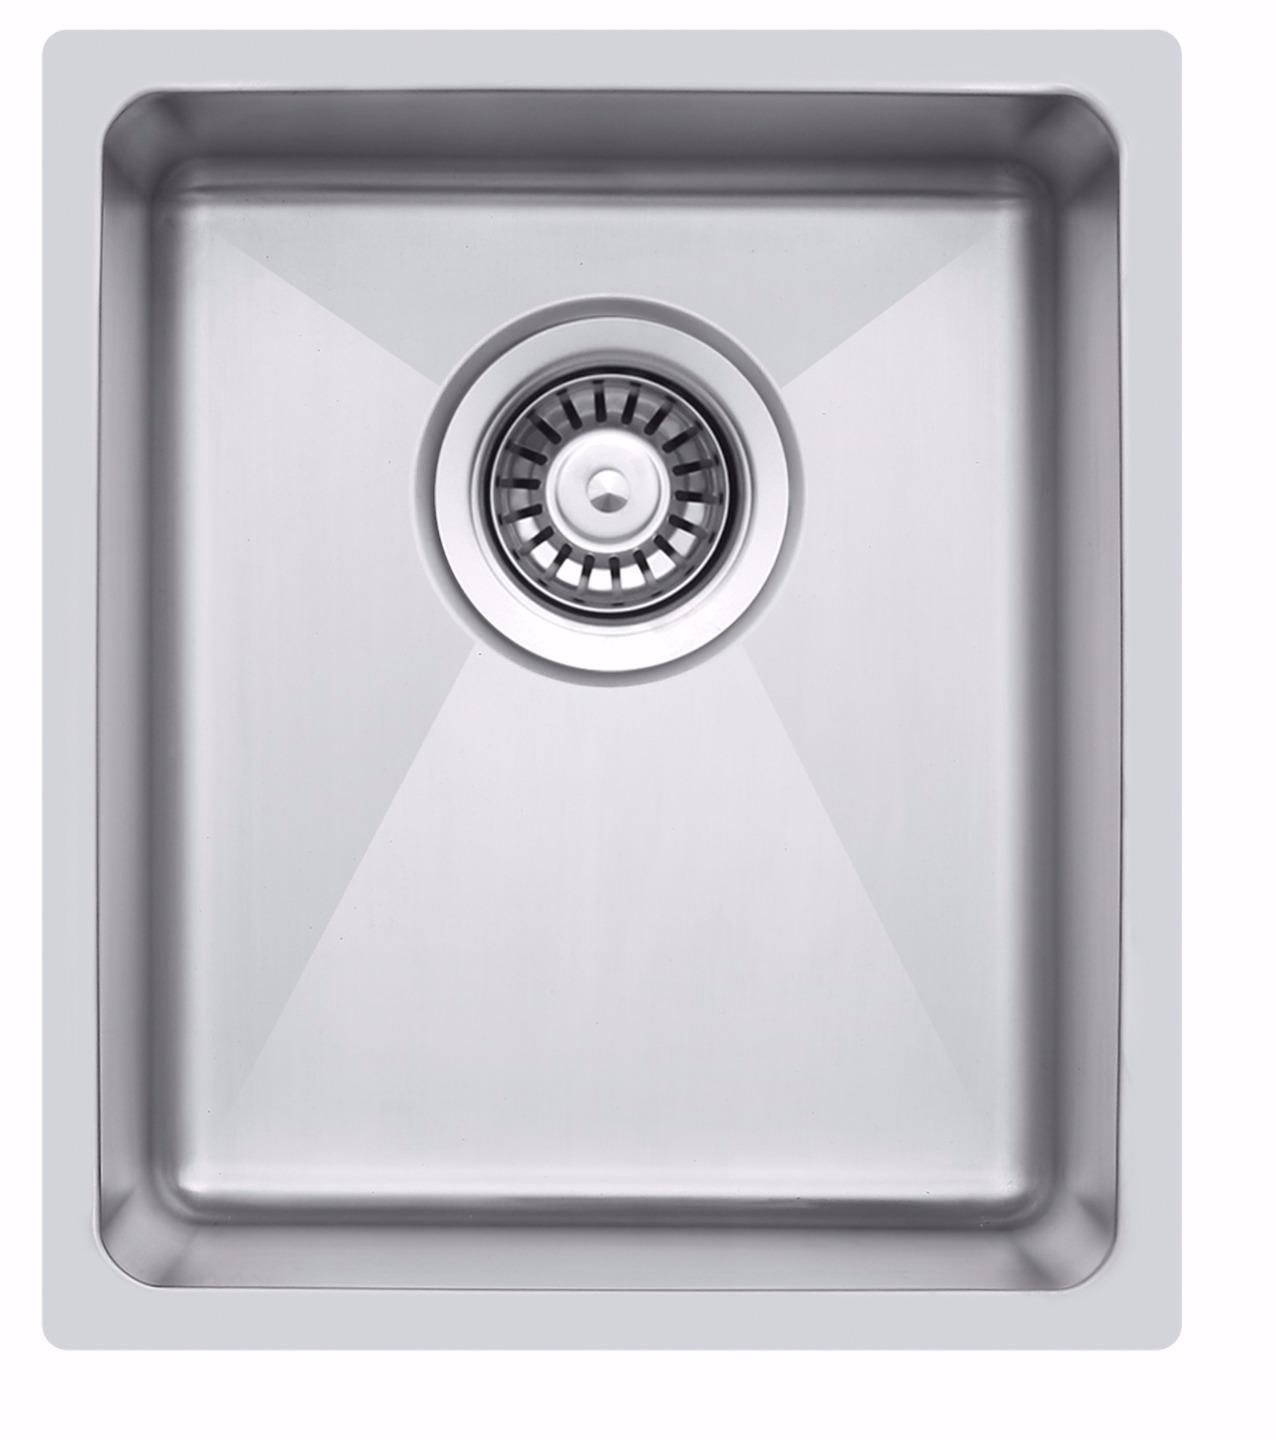 340 x 440 mm Undermount/Inset Deep Single Bowl Stainless Steel Kitchen Sink With Waste (LA016) Grand Taps